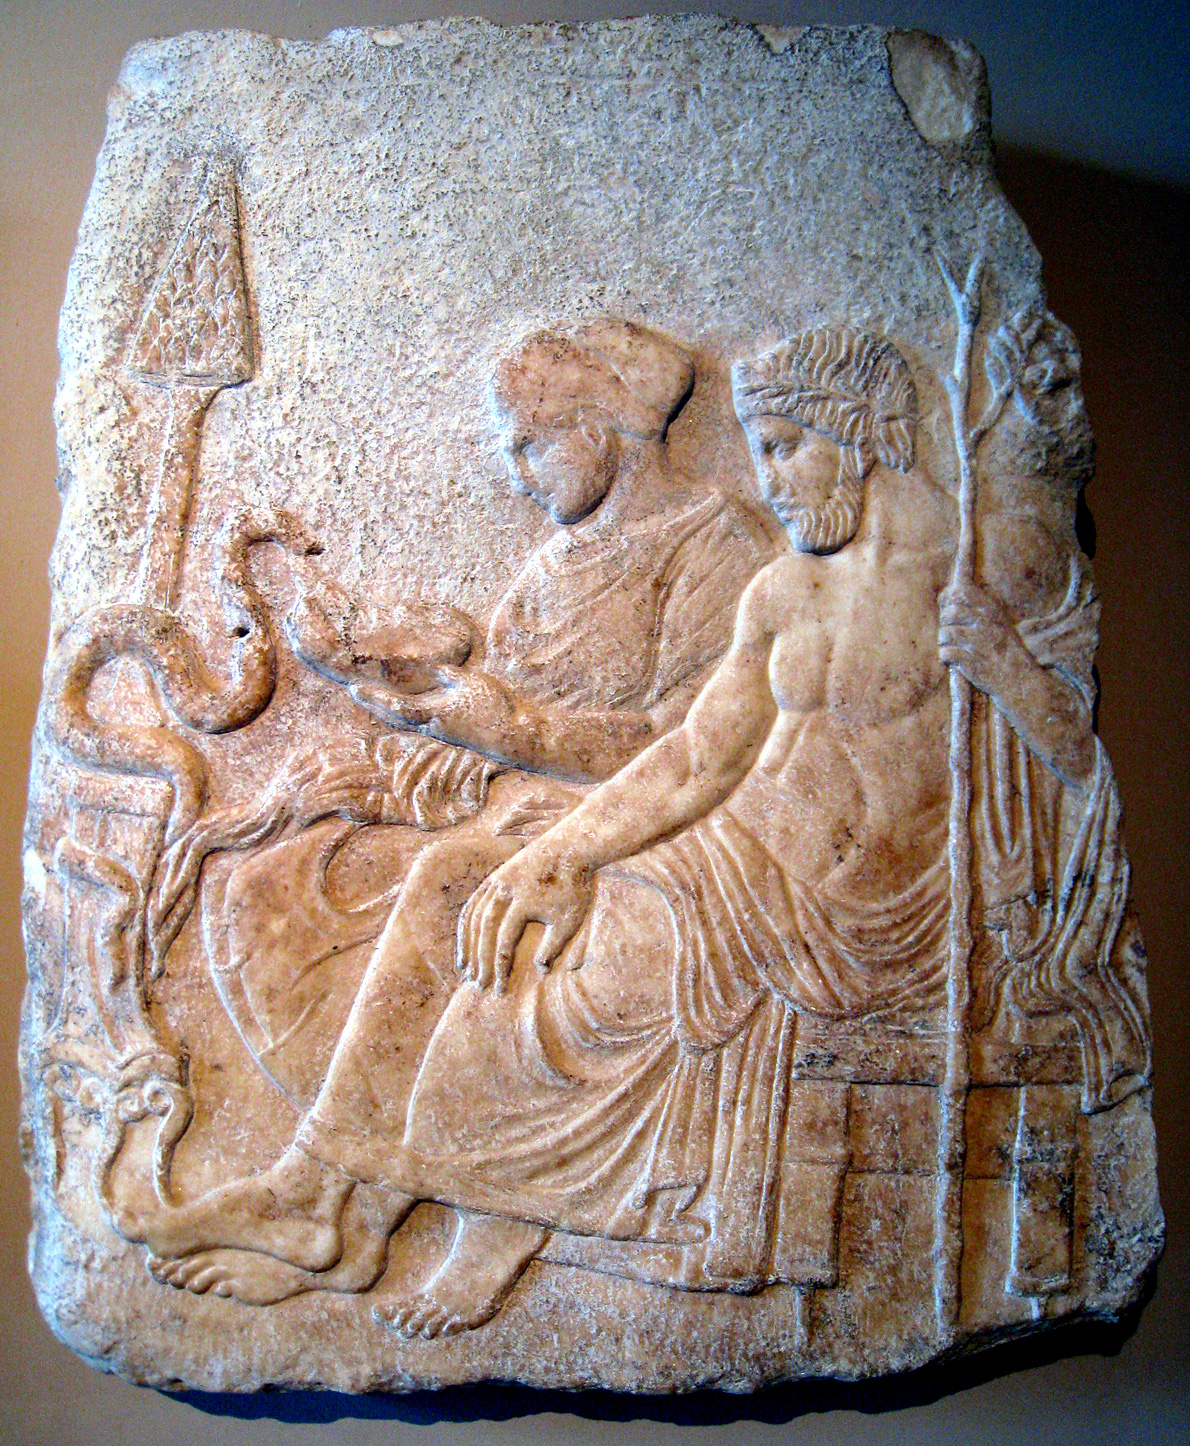 Asklepios and his daughter Hygieia, from Therme Greece, late 5th c. BCE, Istanbul Archaeology Museum (Image in public domain)